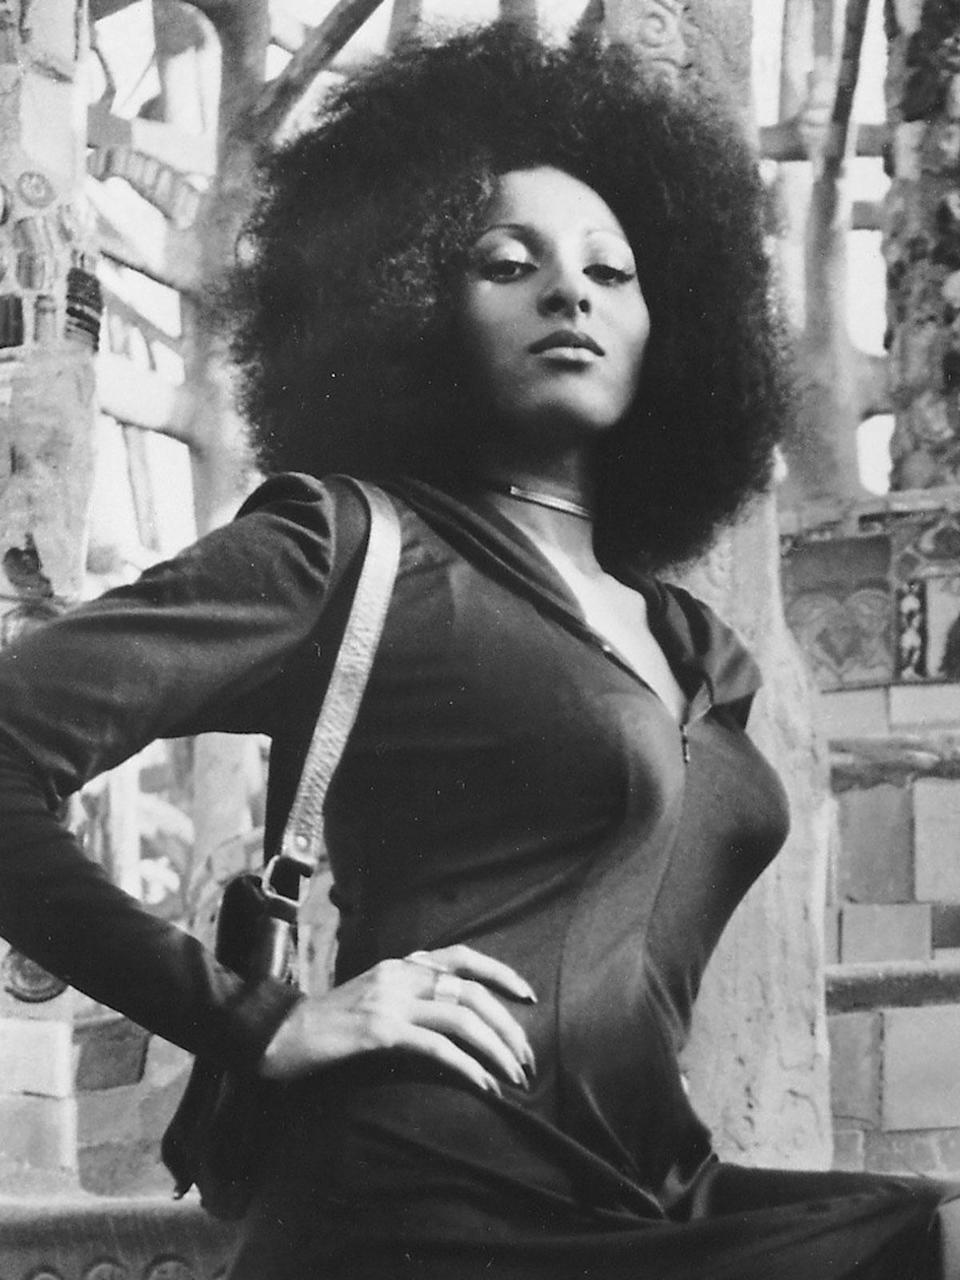 <p>Pam Grier was the it-girl of the 1970s. Throughout the decade, the acclaimed actress rocked a beautiful Afro throughout most of her films, including <em>Hit Man</em>, encouraging other Black women to do the same. </p>